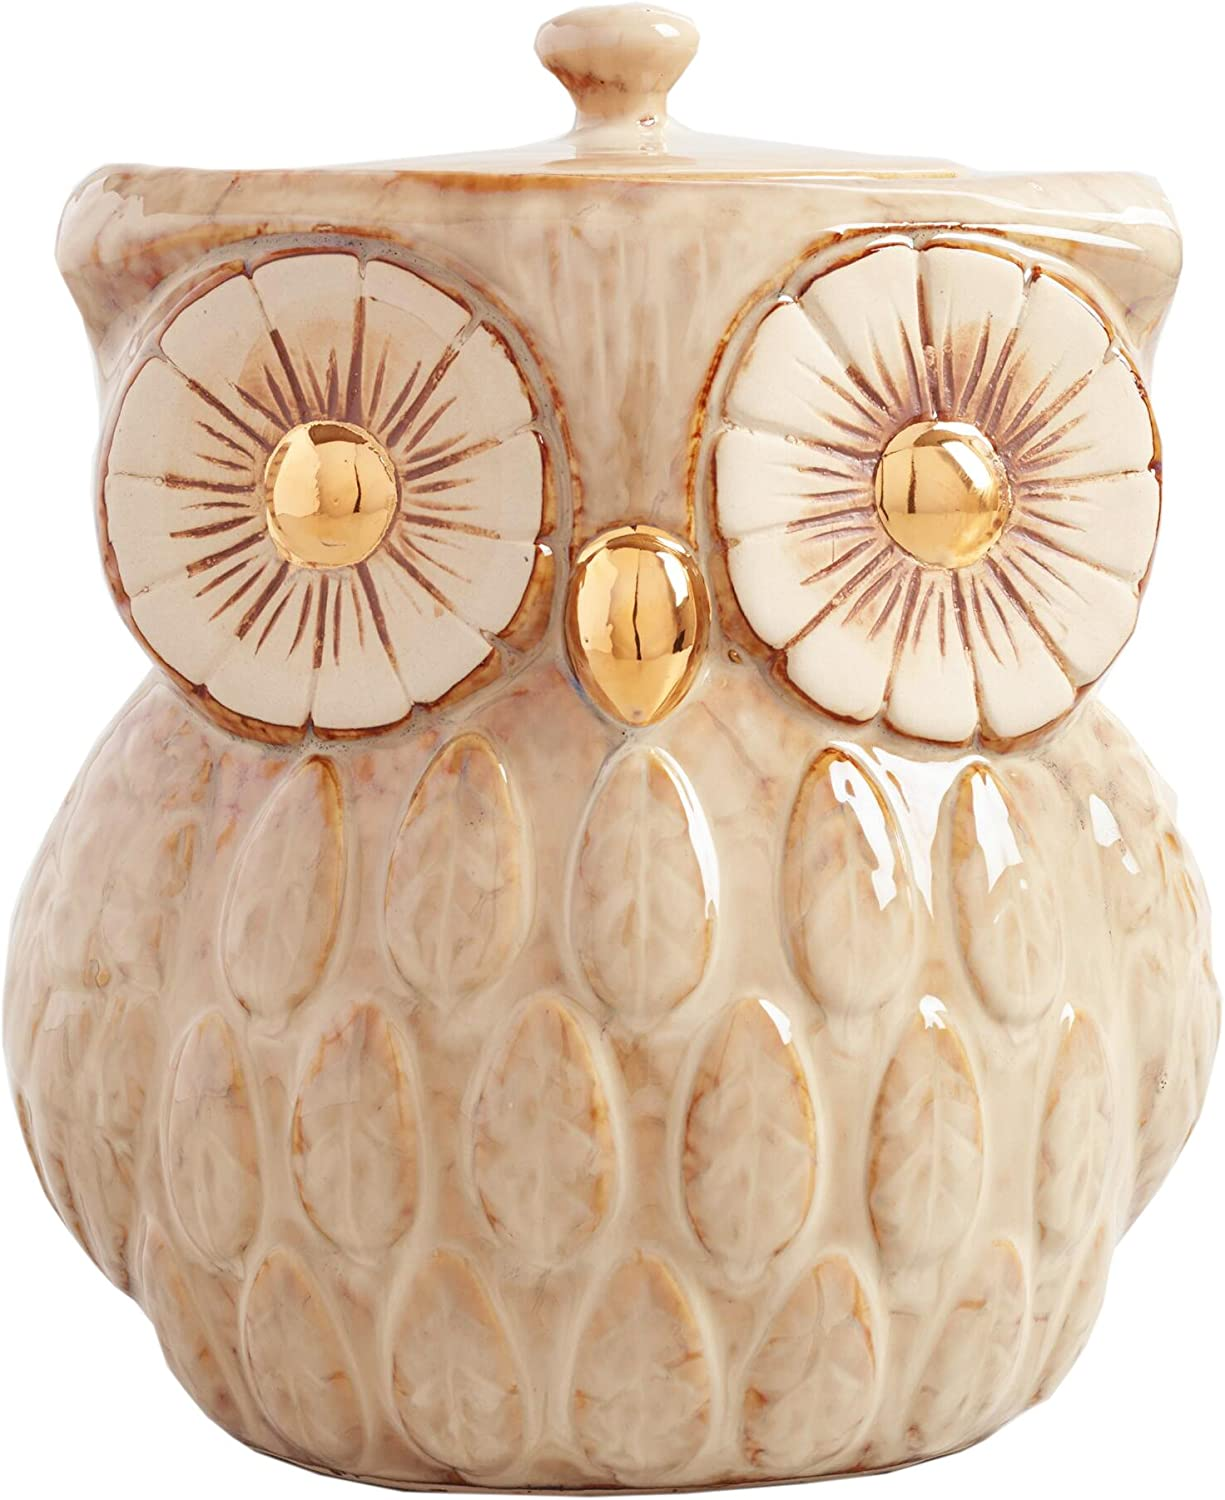 Ceramic Owl Cookie Jar - Rustic Decor with Vintage-Antique Look Food Container - Kitchen Organization and Storage - Metallic Gold - 104 oz